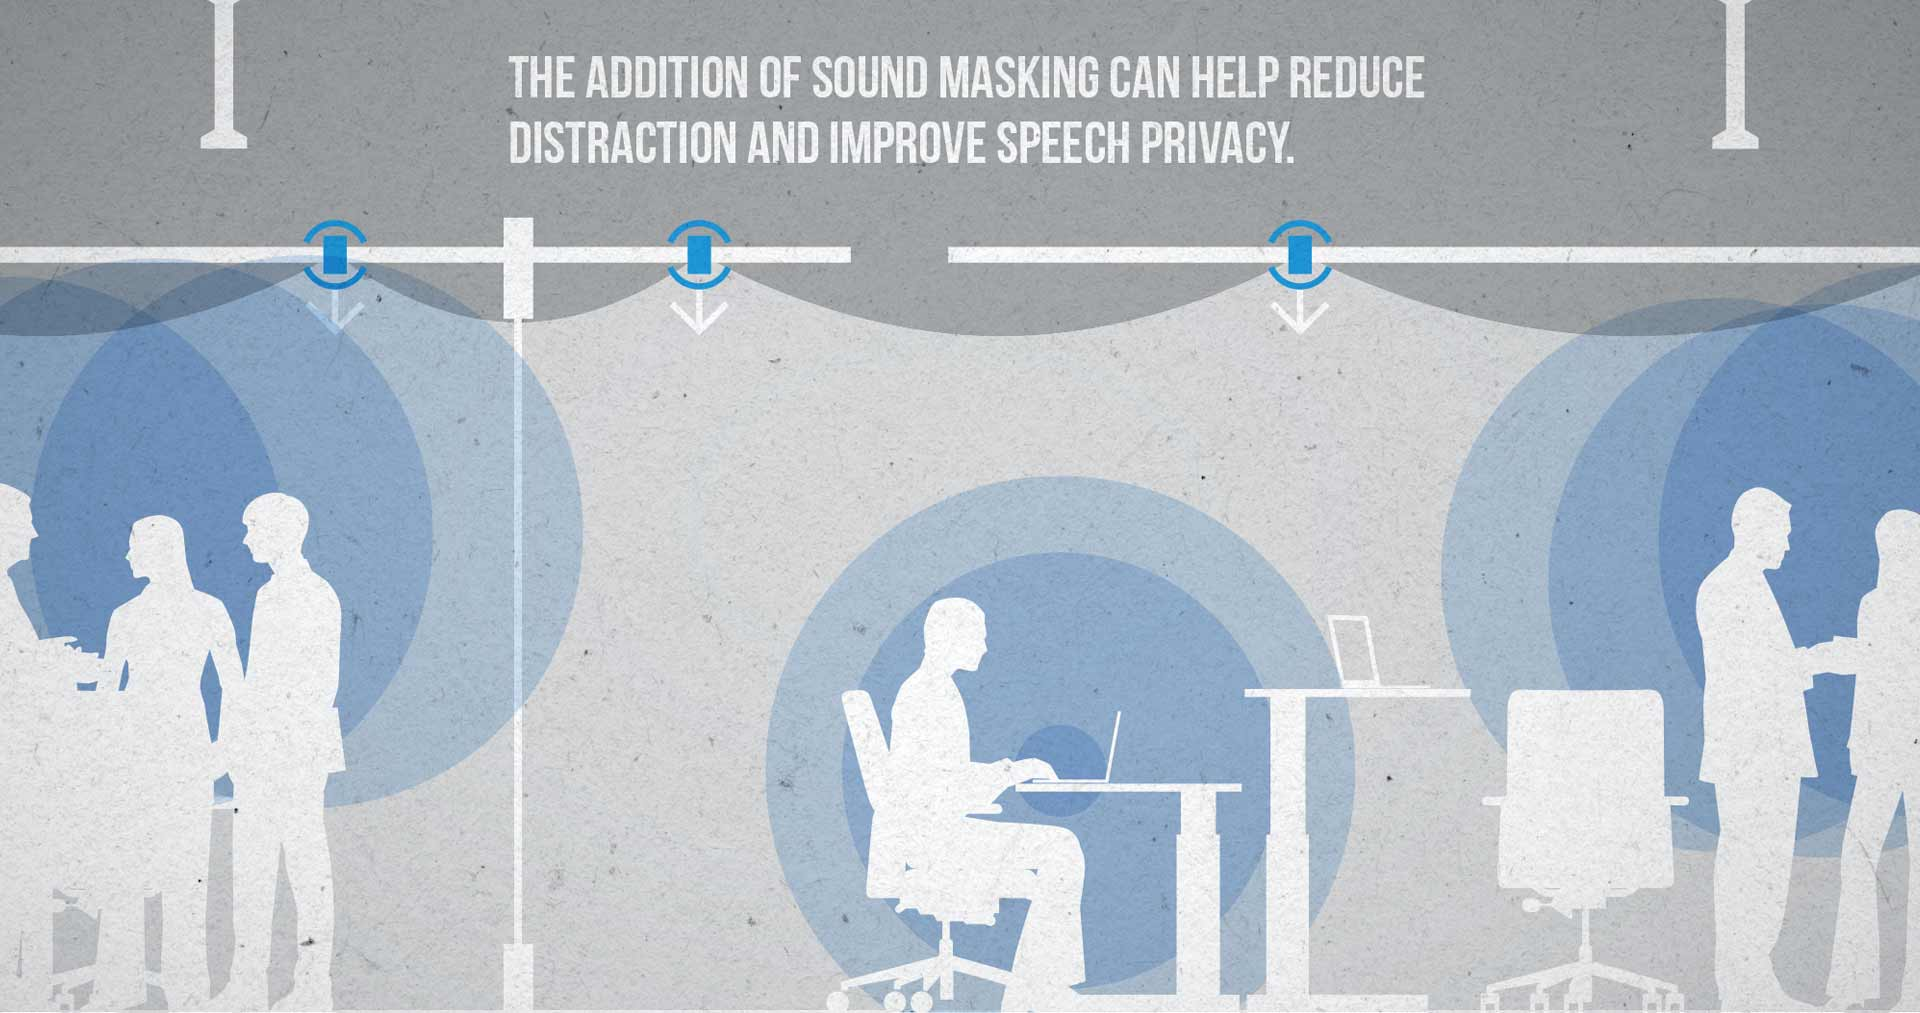 soundmasking-infographic.DL16.jpg